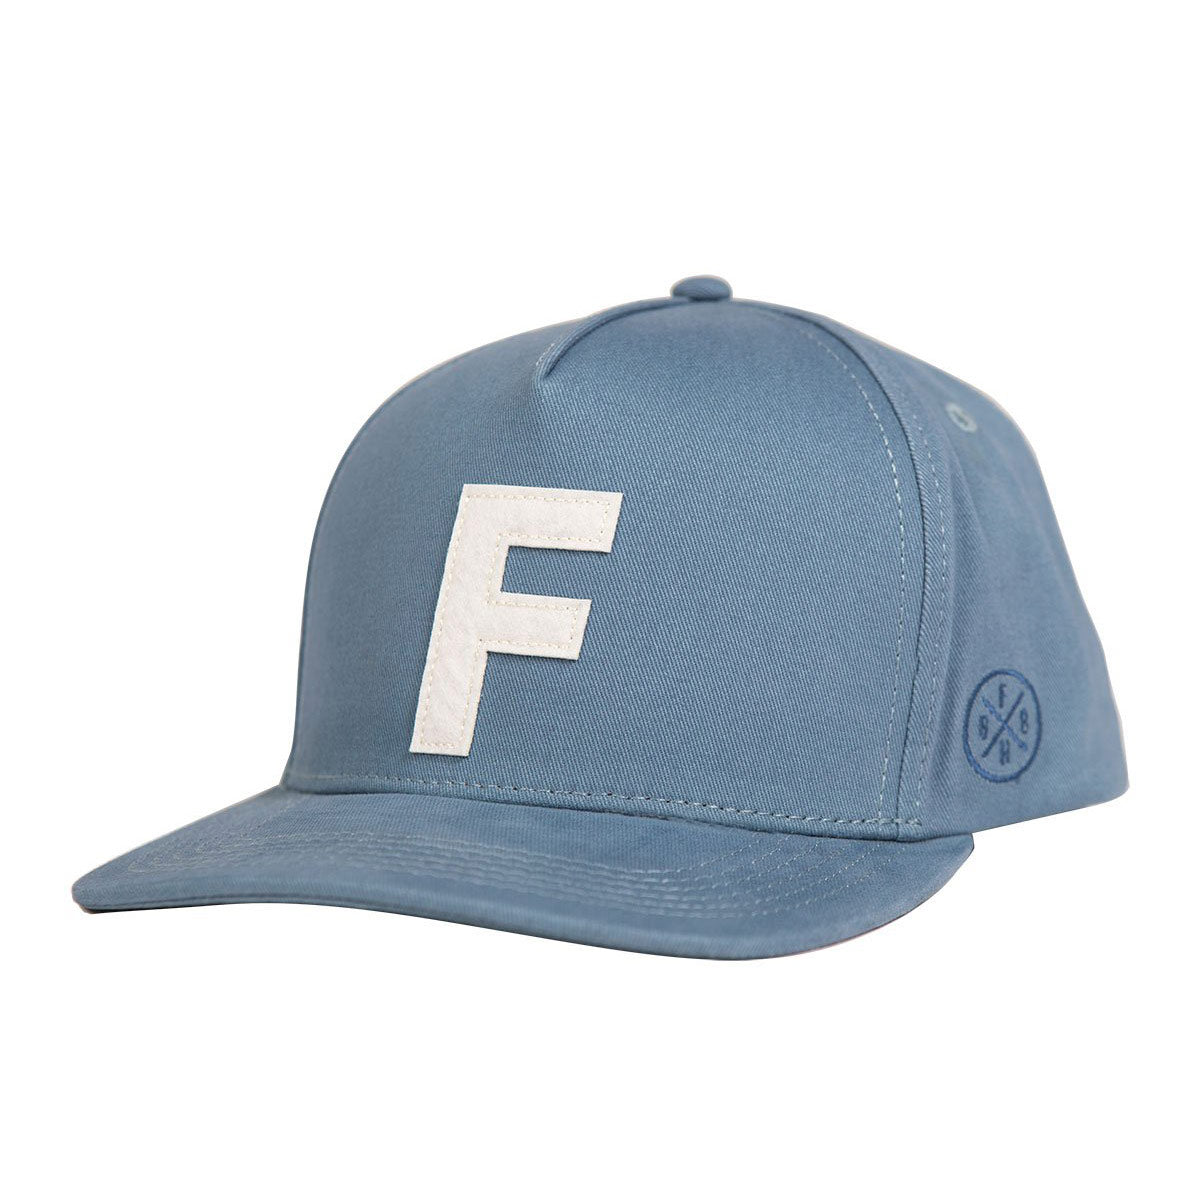 Fasthouse - Stitch Hat - Blue